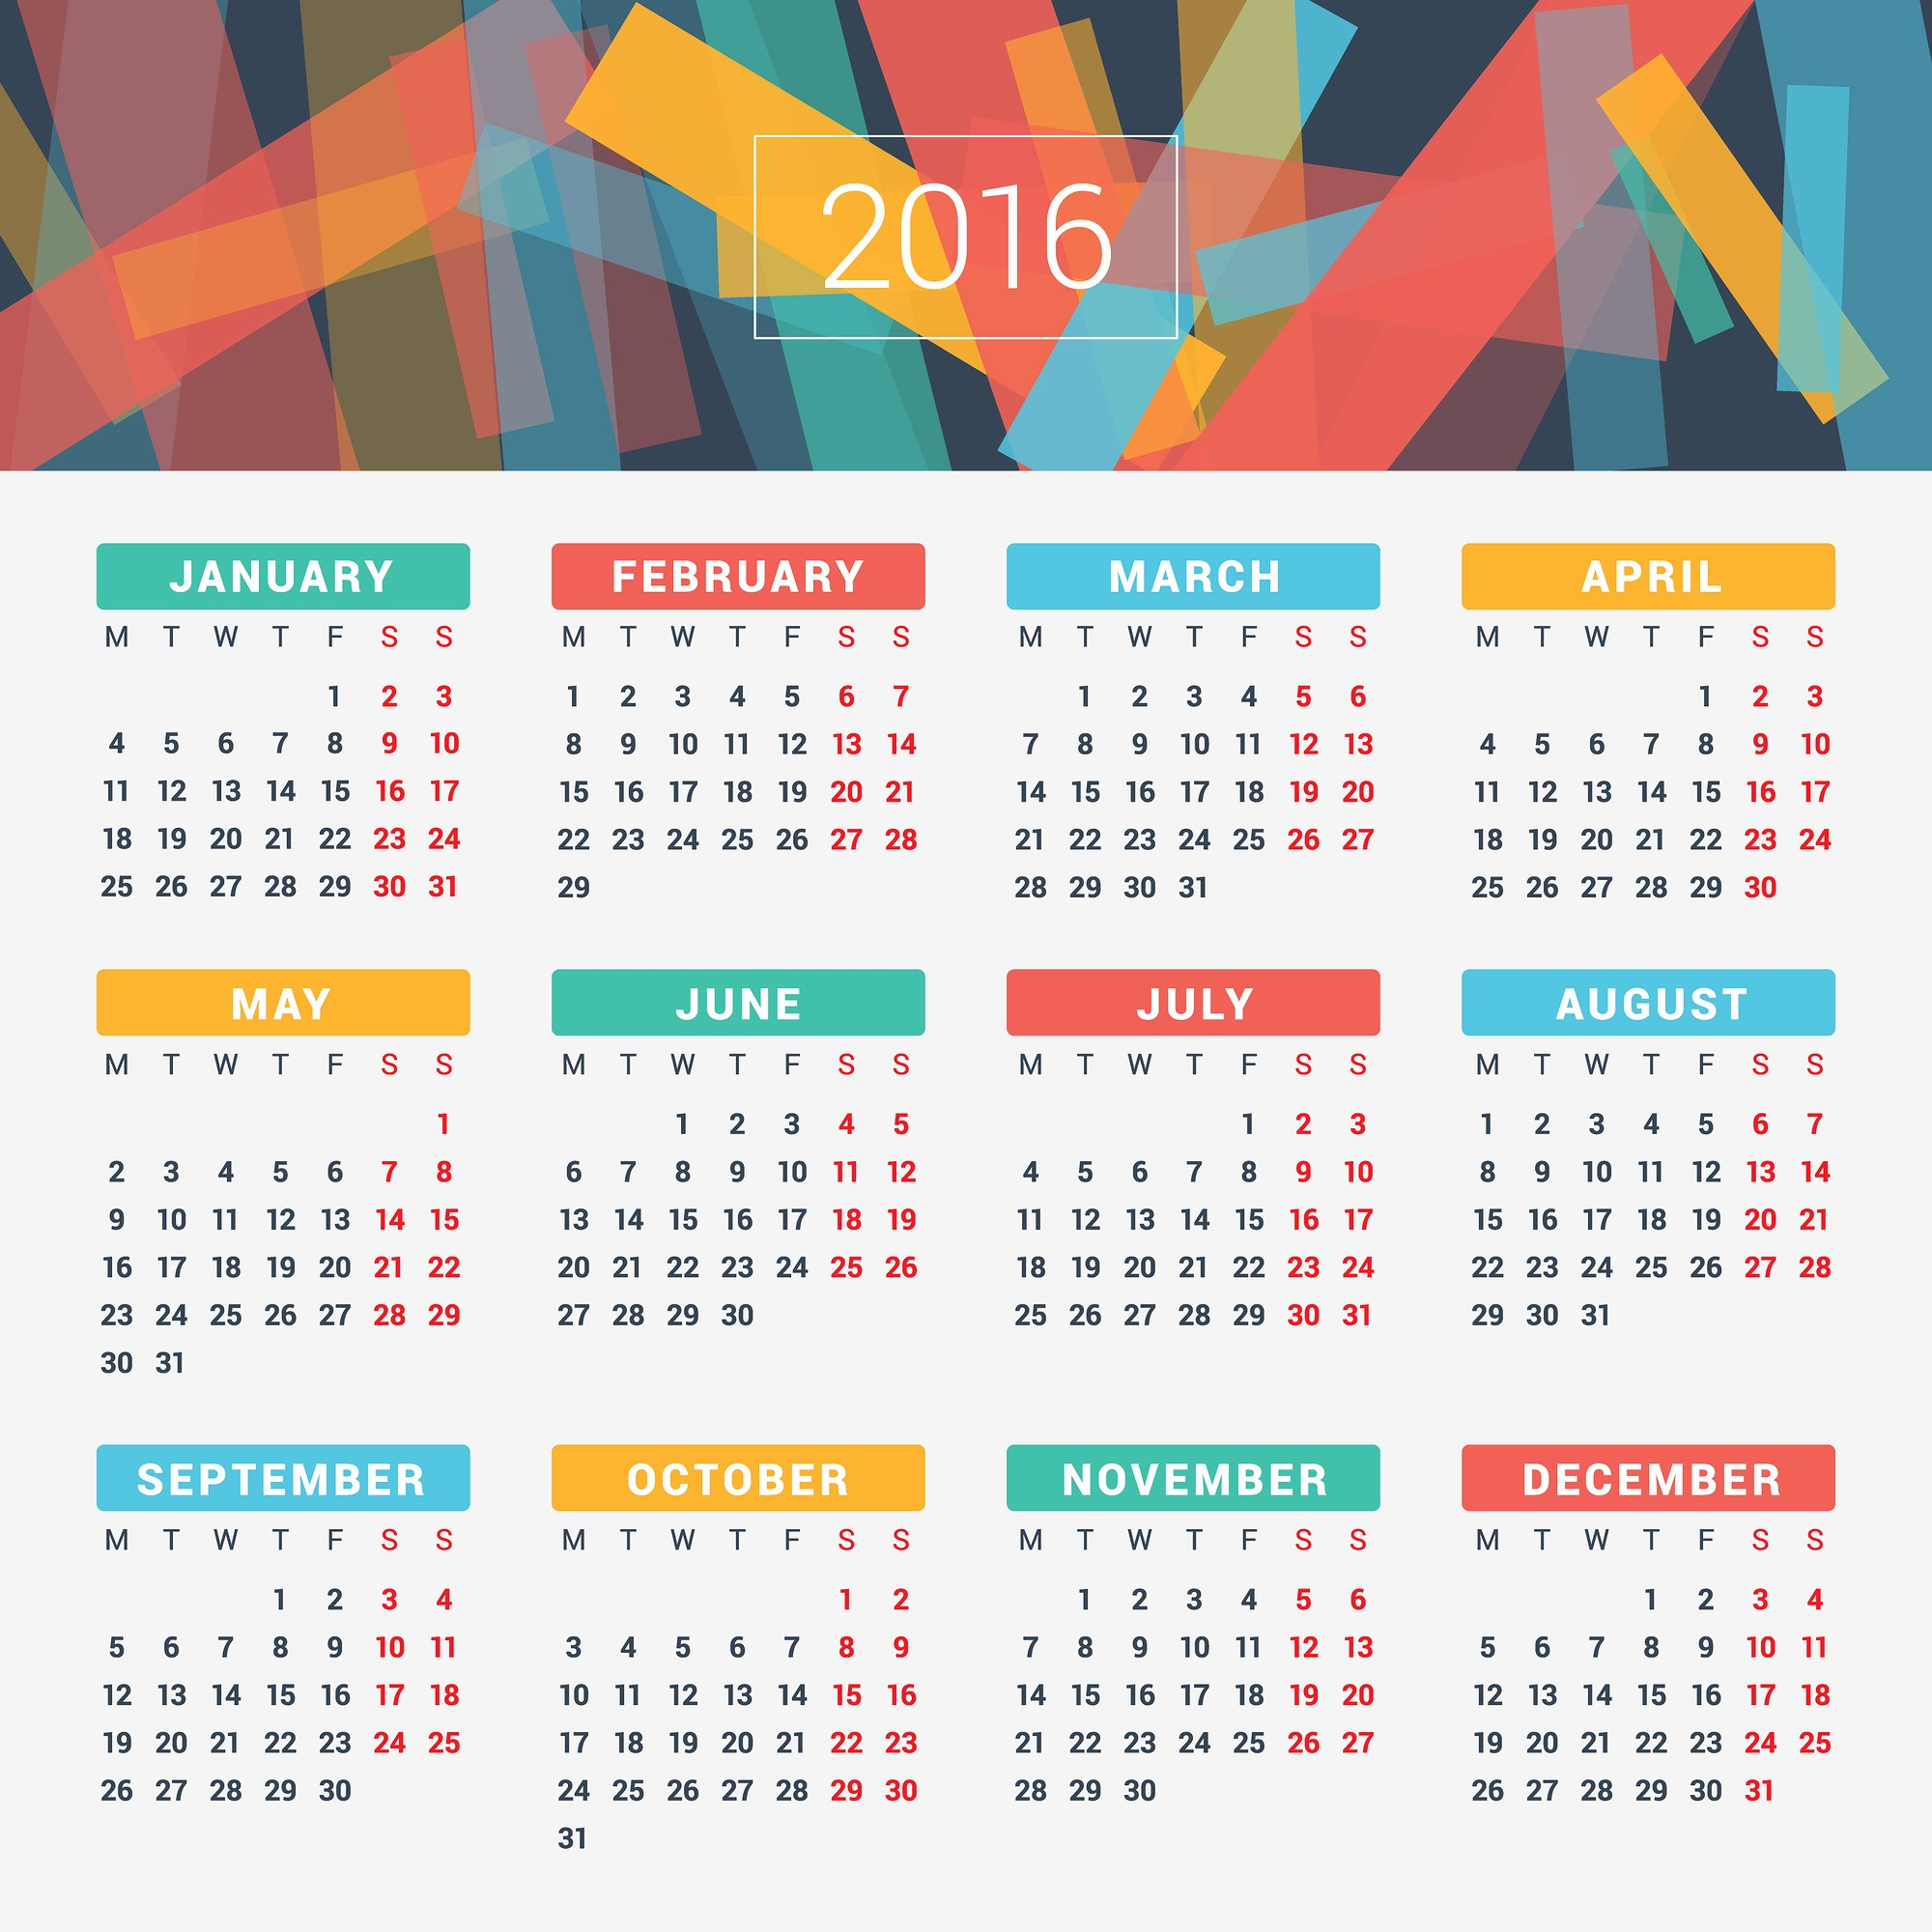 12 Months Calendar 2016 Printable Inspirational 2016 Year Calendar Wallpaper Download Free 2016 Calendar